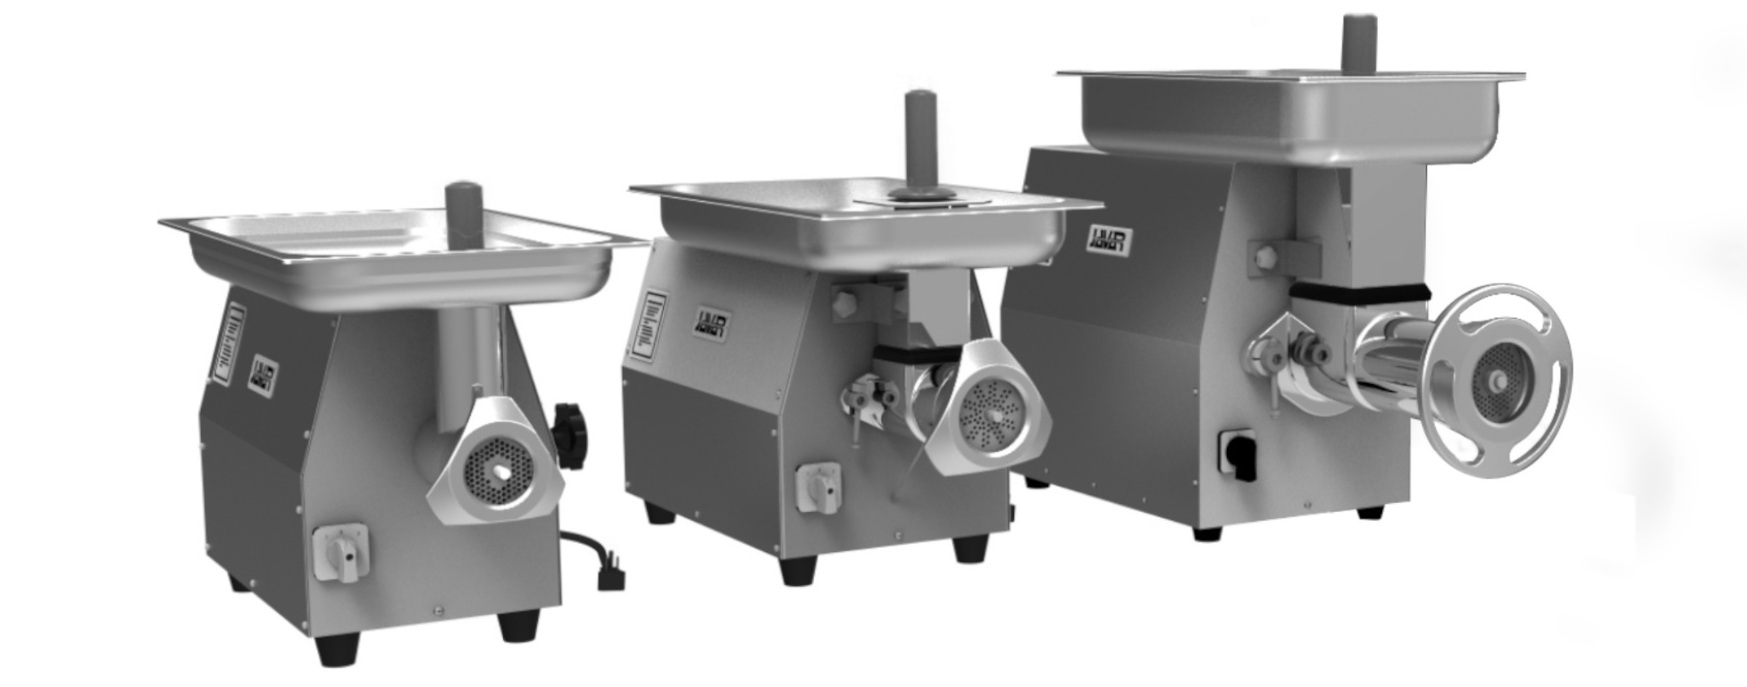 The Project - The brief for the project was simple: To redesign the commercial meat-grinder family range MC( 12, 22, 32M ), To compete internationally with the most renowned brands in the area. The products were required meet international standards for occupational safety and sanitation.